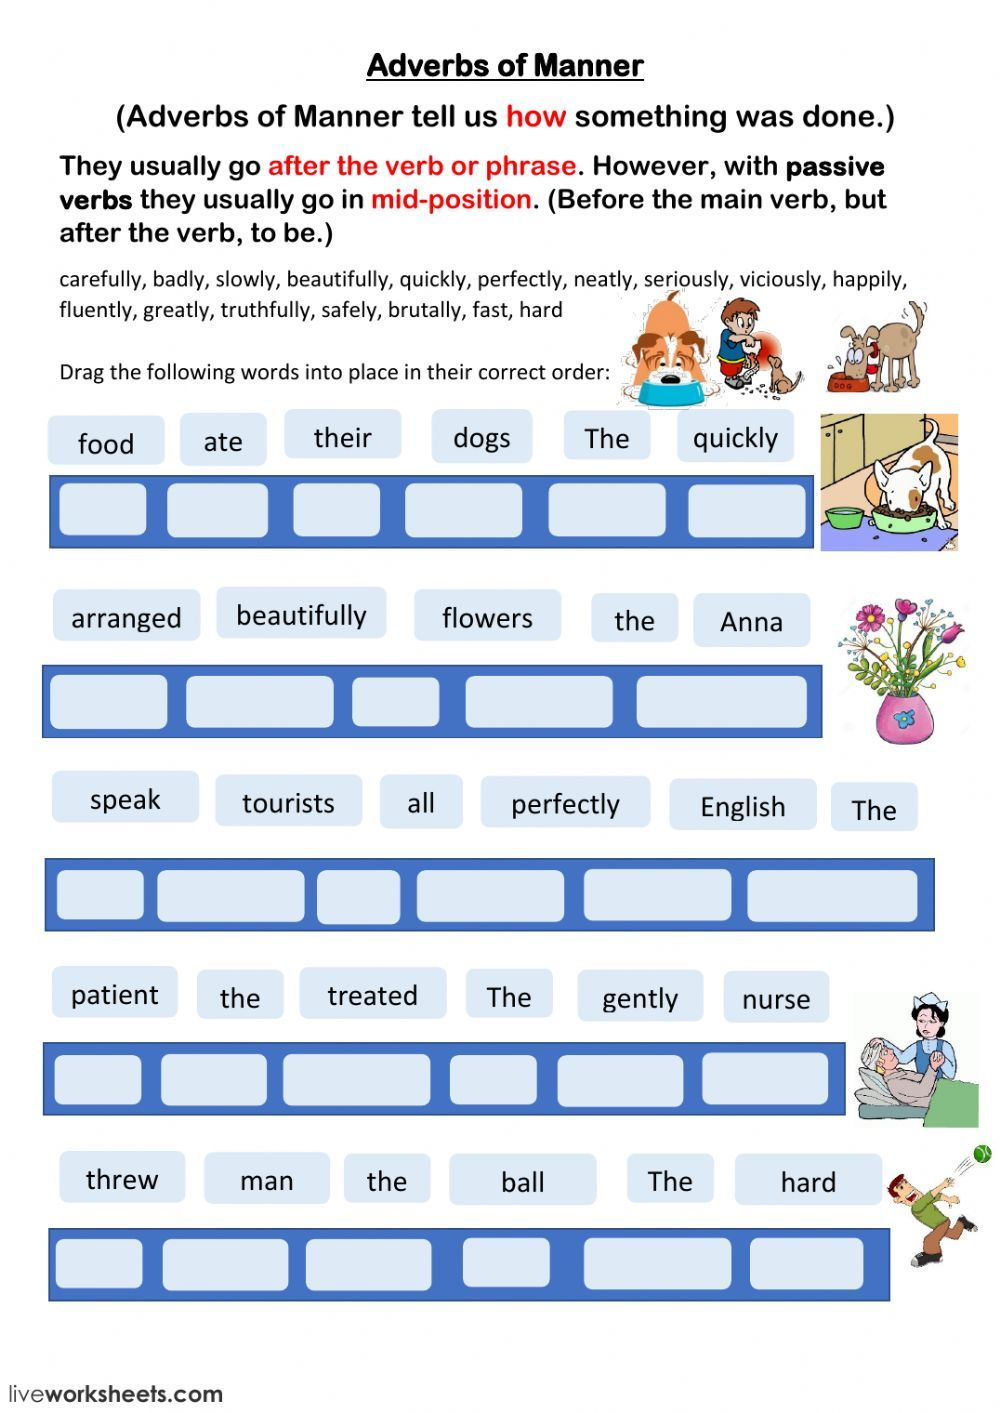 Adverbs of Manner English as a Second Language (ESL